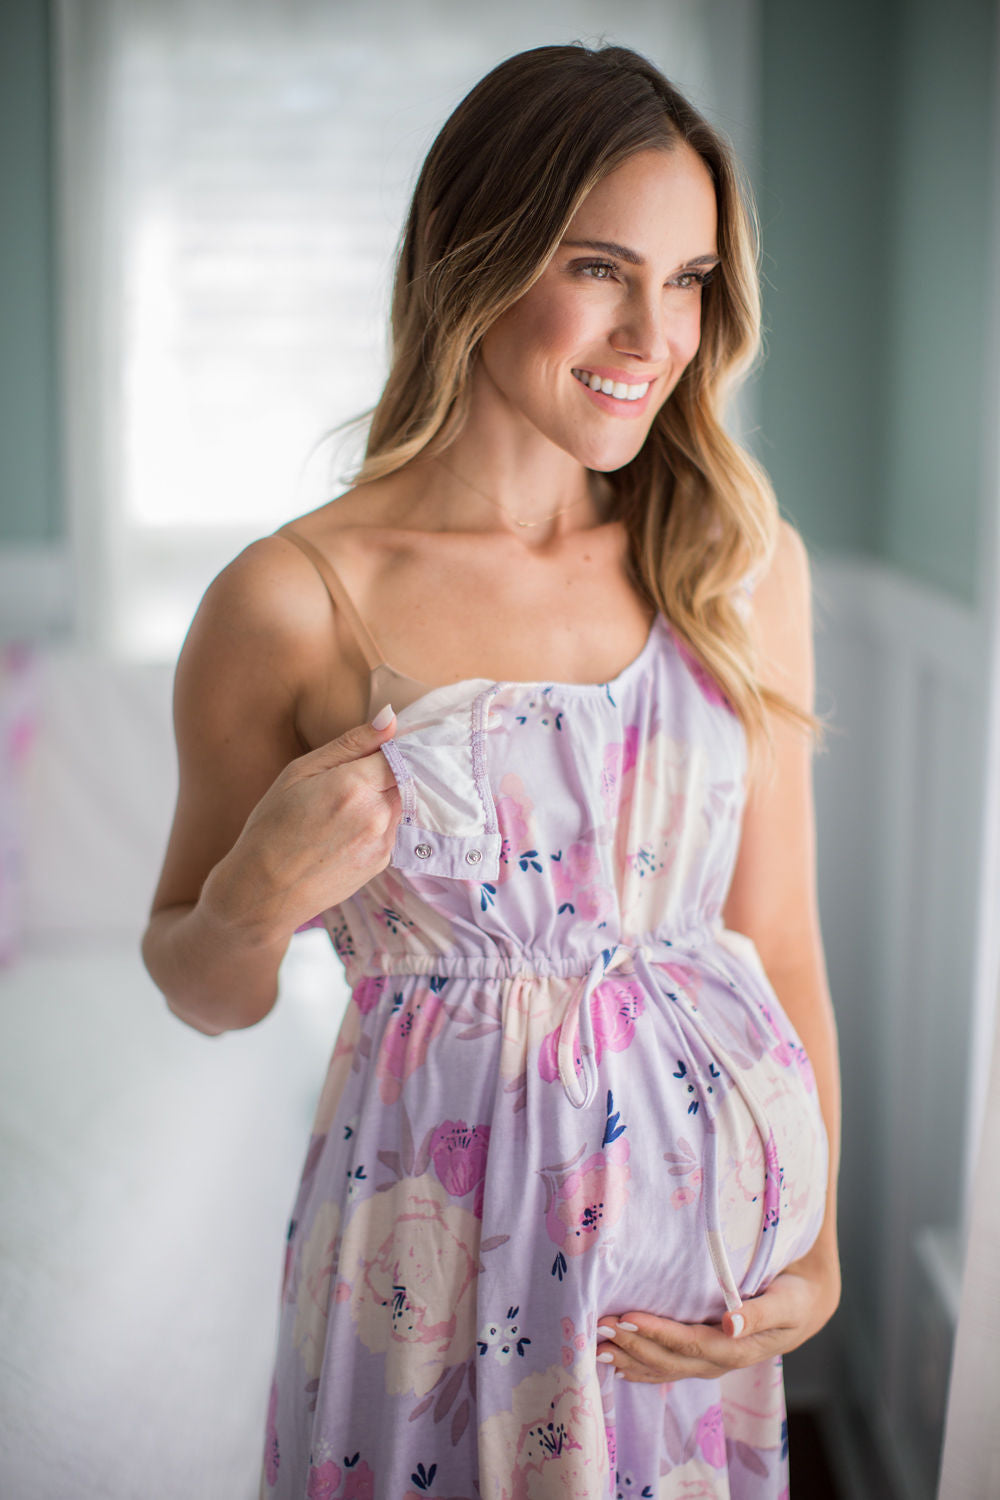 Easy snap shoulder with stretch waistband and neckline. Wrap-style dress for hospital wear and maternity easy. Save time. Shop online for Black Friday Sale. Cyber Monday deal. Get your matching set for the family from Baby Be Mine Maternity. Maternity photoshoot with soft clothing. Stretchy and soft fabric mom and baby will love.